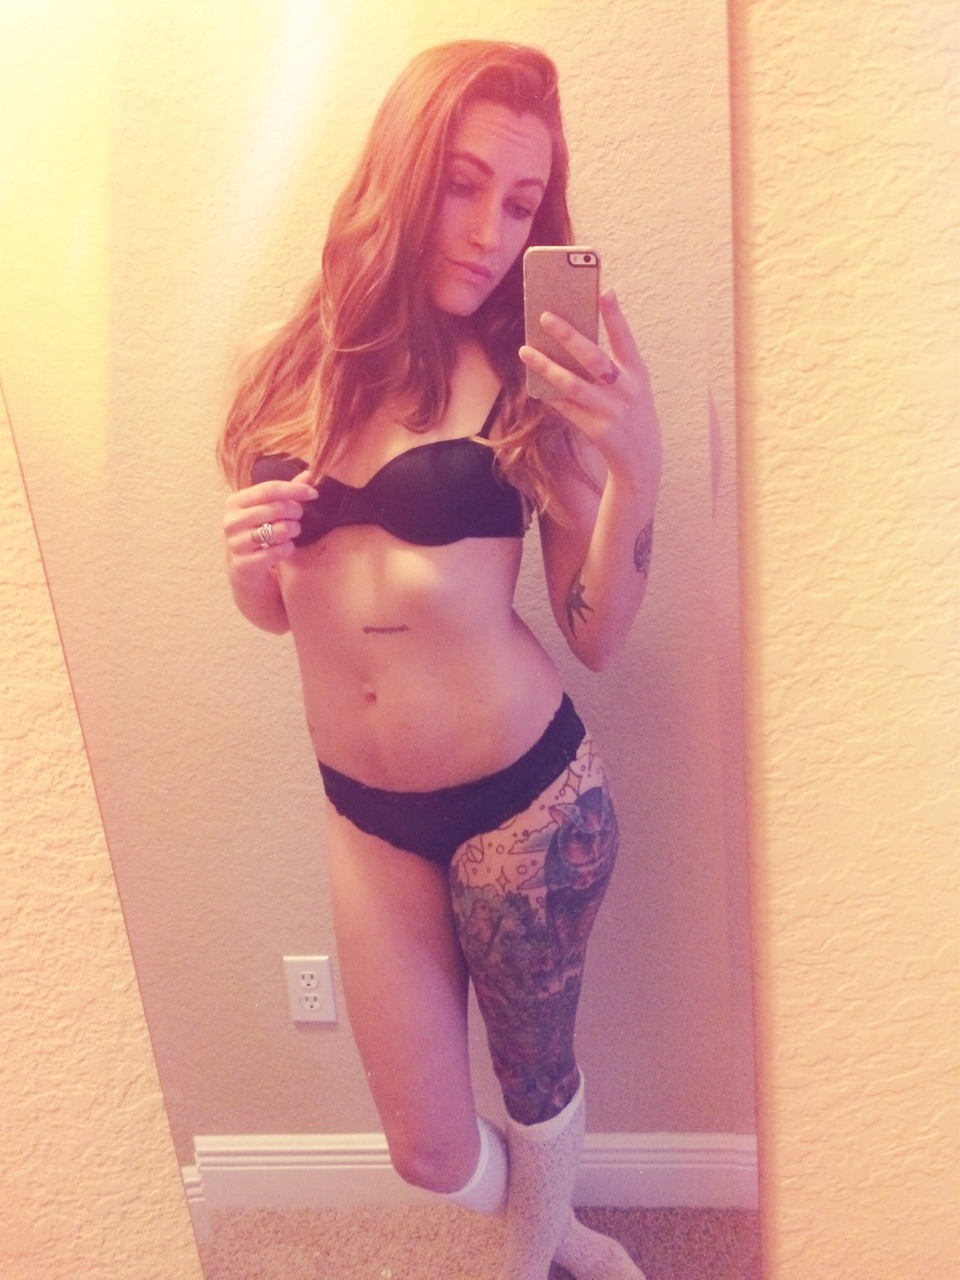 Real Girl Love Nude Selfie With Iphone 1 24 - Real Girl Love Nude Selfie With Iphone Part 1